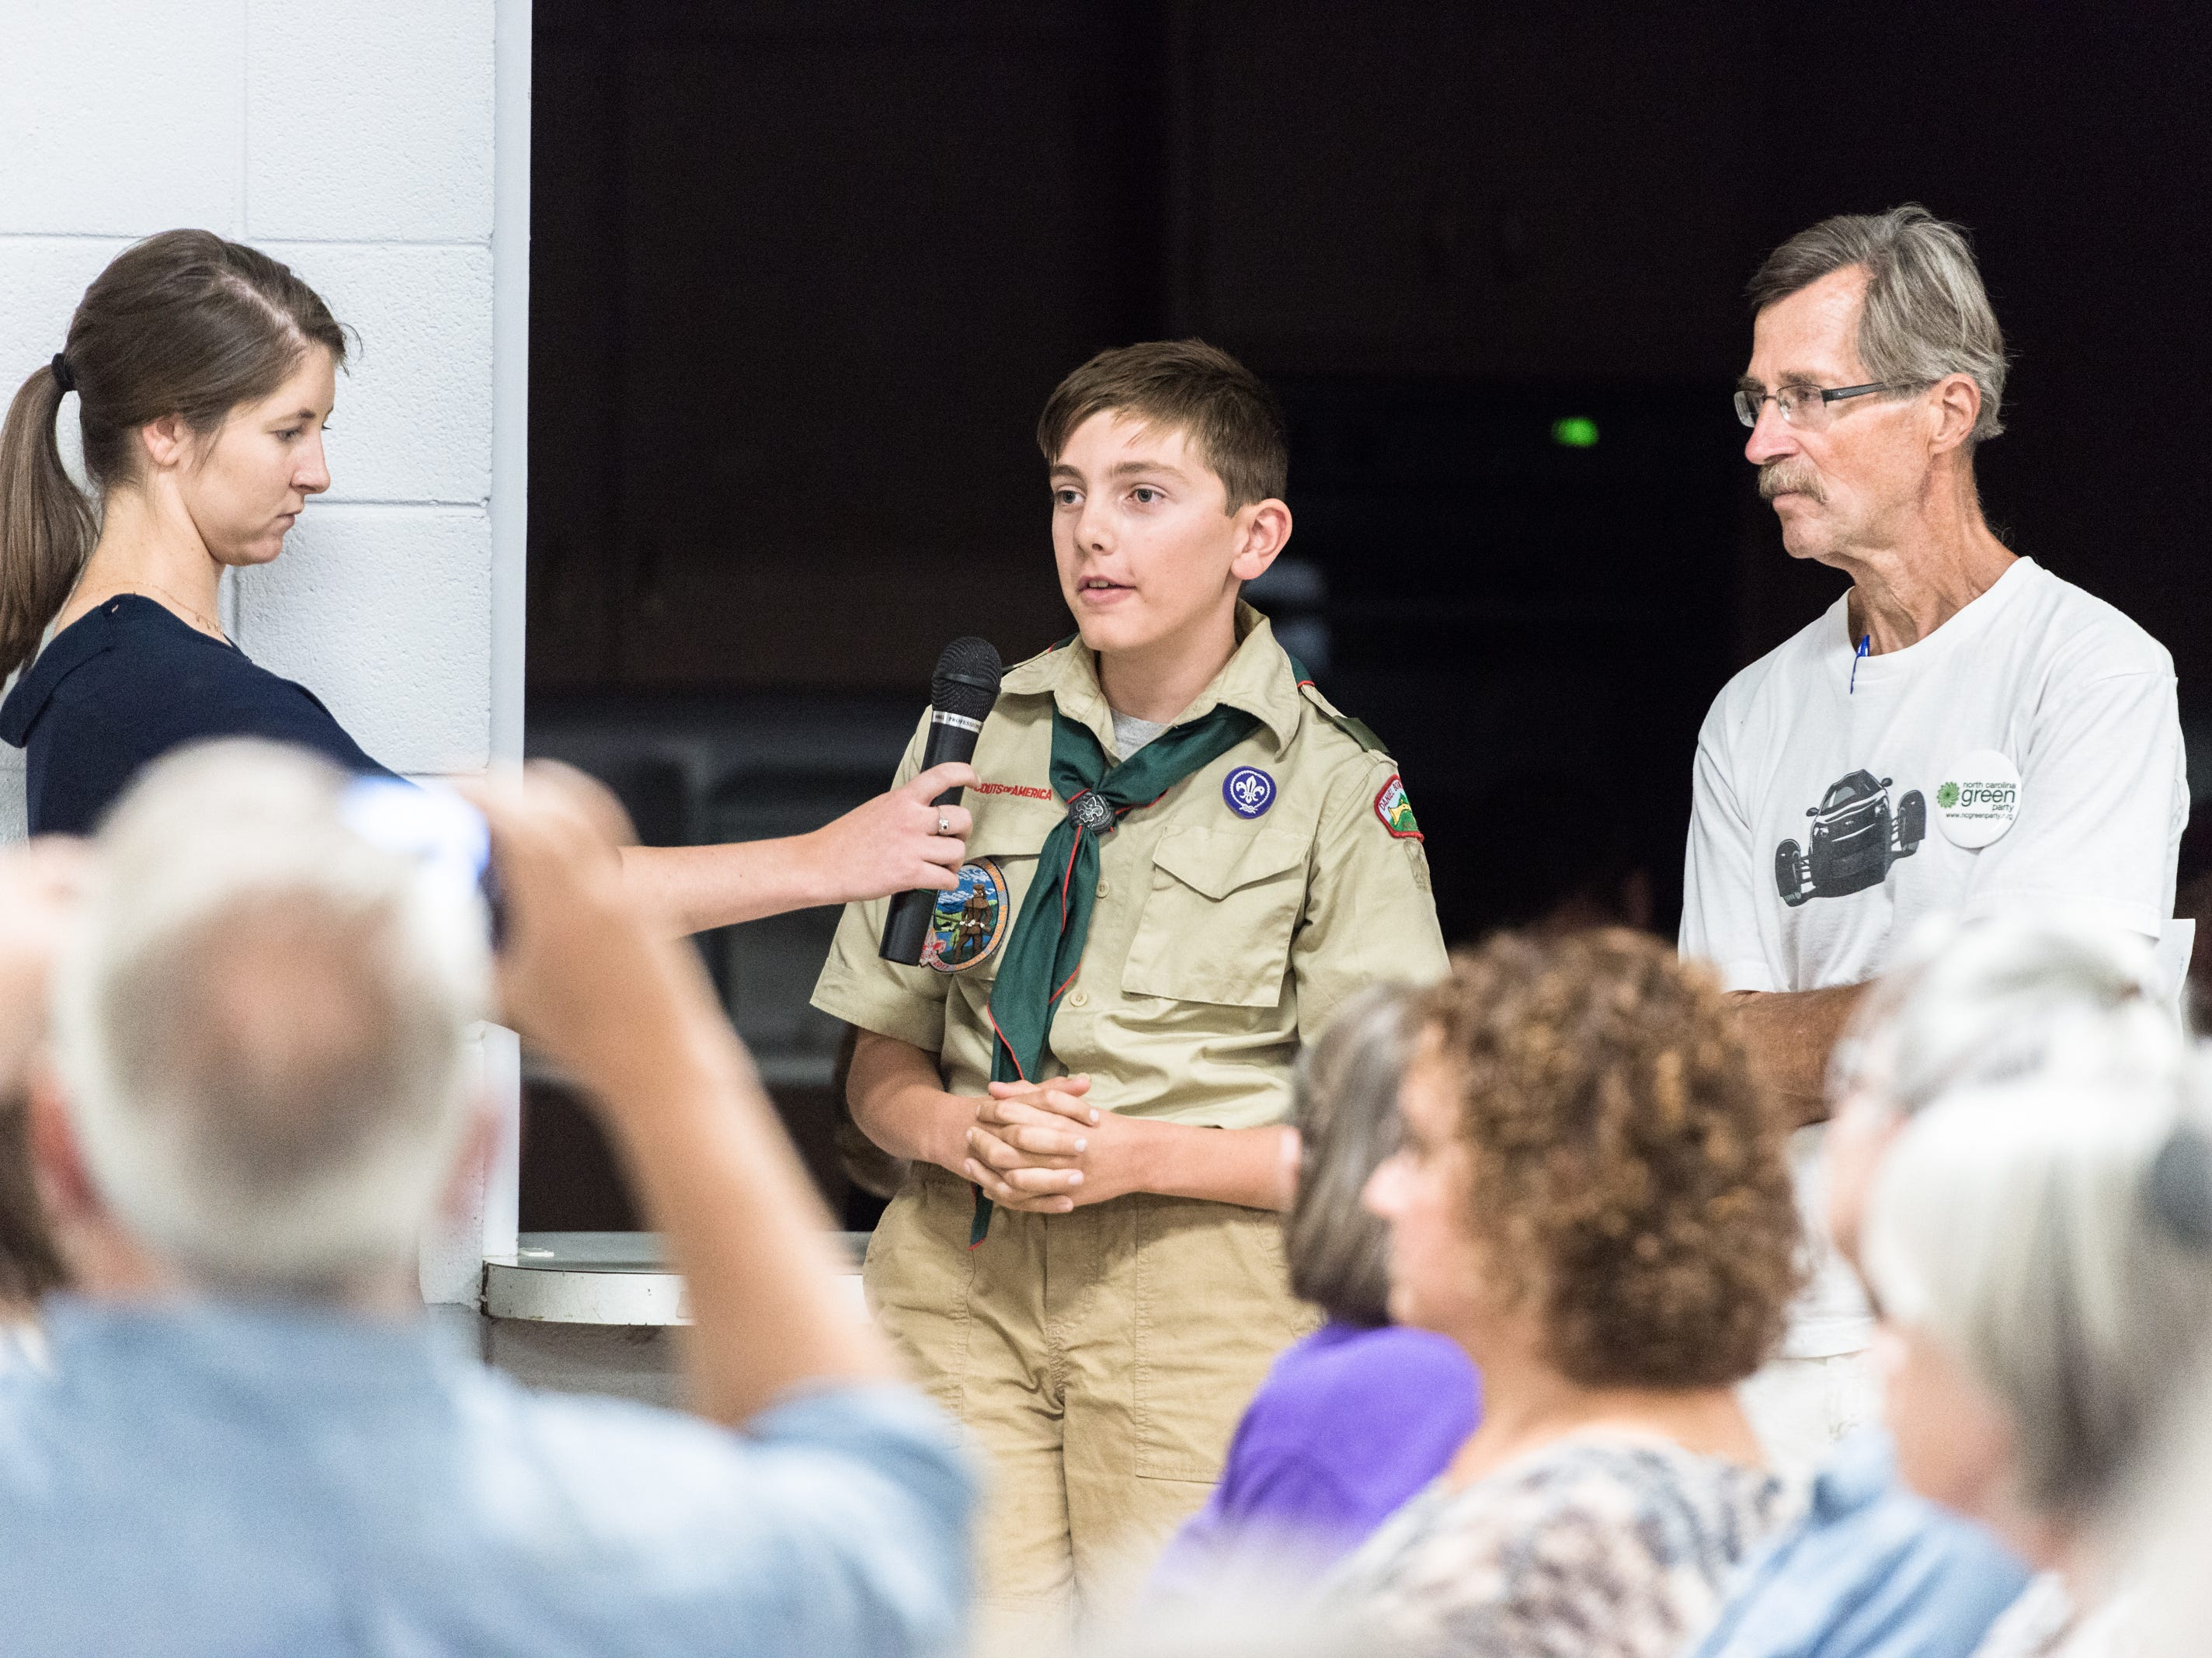 A young attendee of a town hall meeting with Patrick McHenry, the U.S representative for North Carolina's 10th congressional district, asks him a question at the Riceville Volunteer Fire Department Wednesday, August 1, 2018.